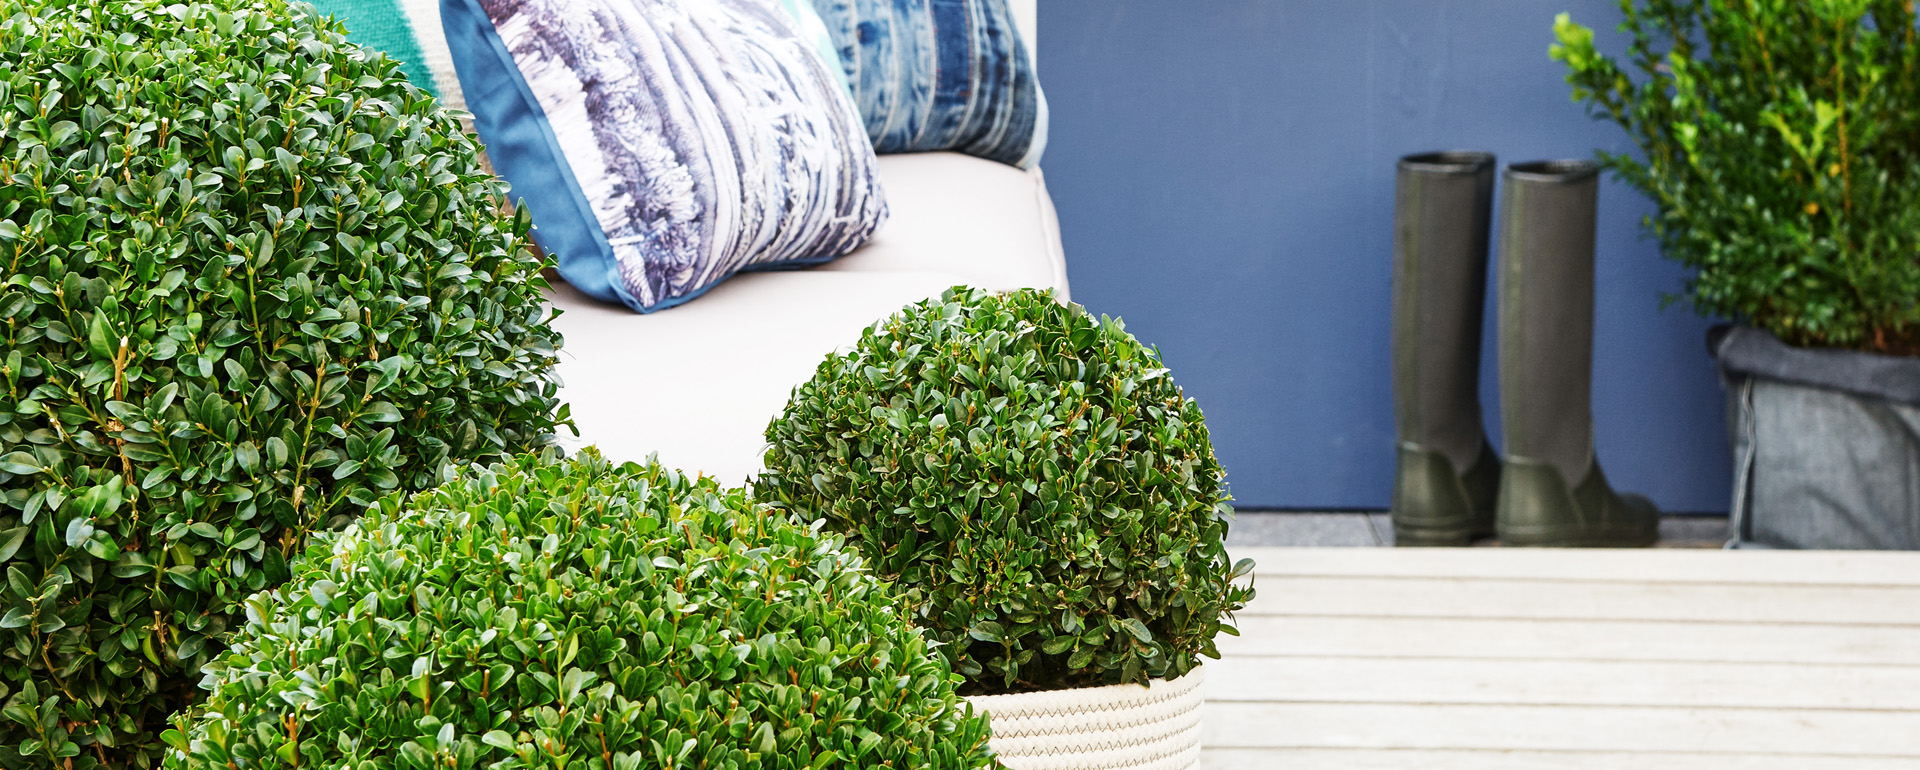 buxus jeans of garden home